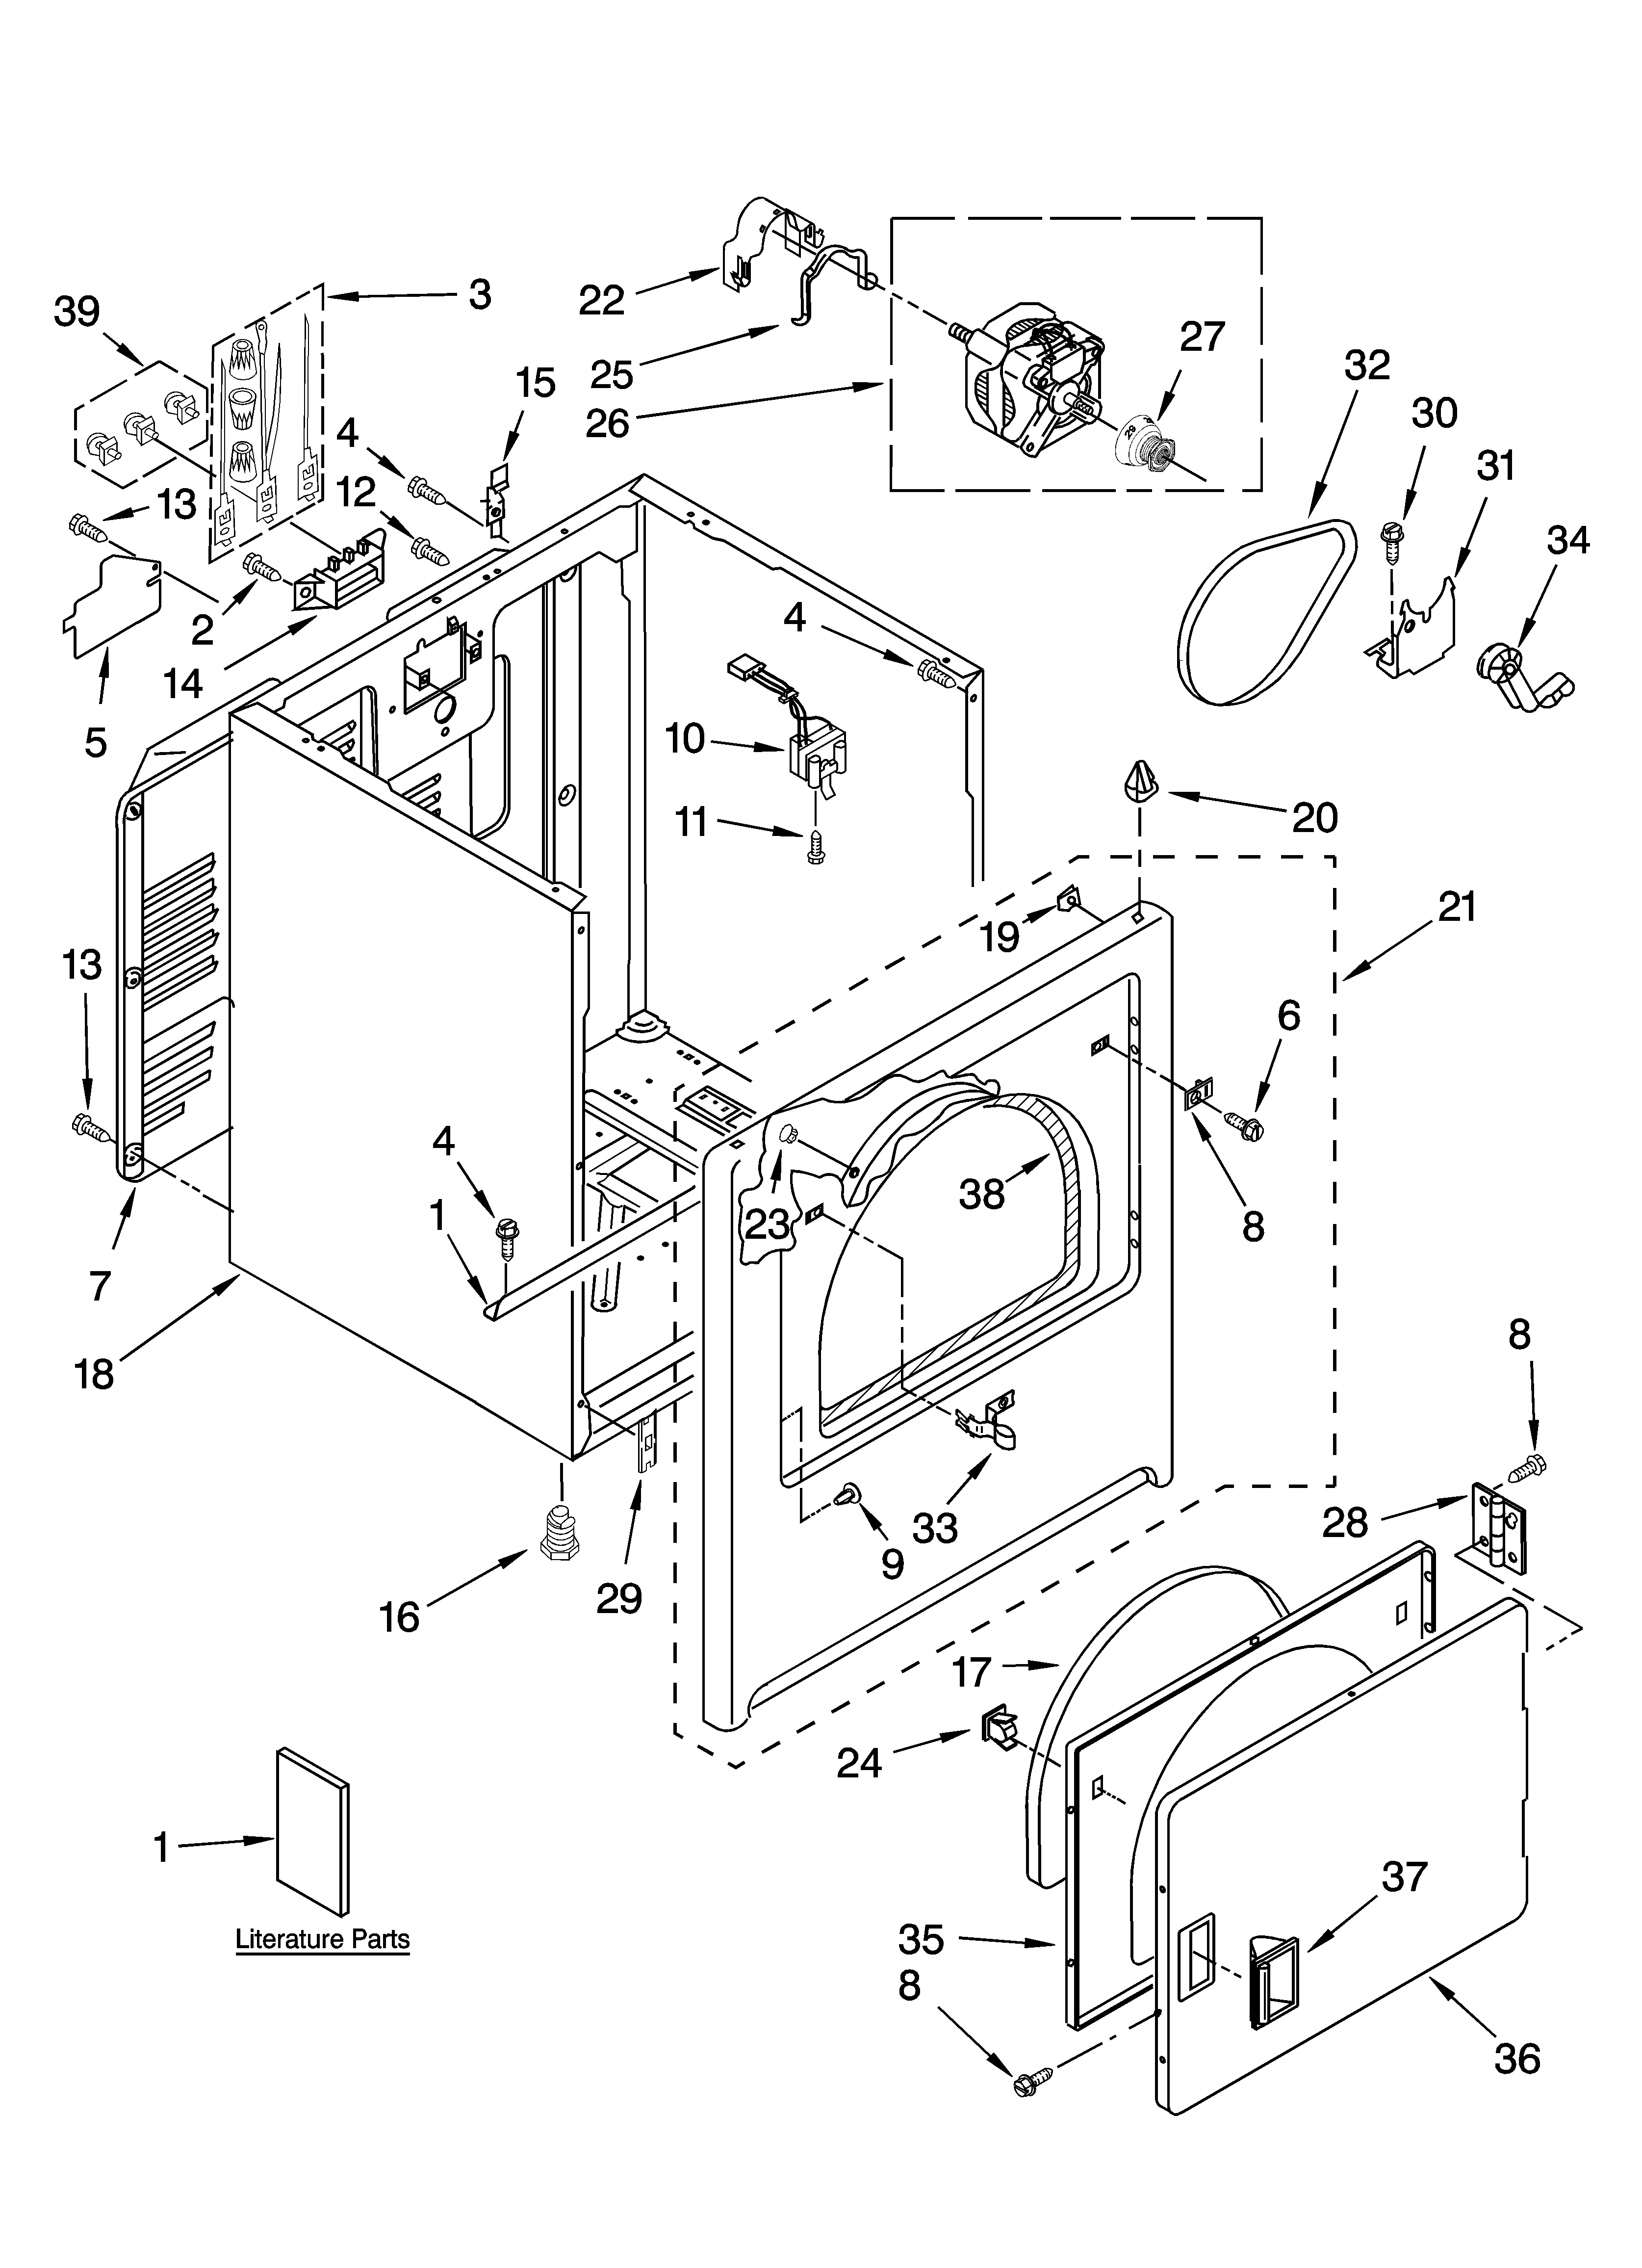 admiral dryer wiring diagram Download-Admiral Dryer Parts Diagram Unique Admiral Admiral Laundry Parts Model Pump Control Panel Wiring 8-k